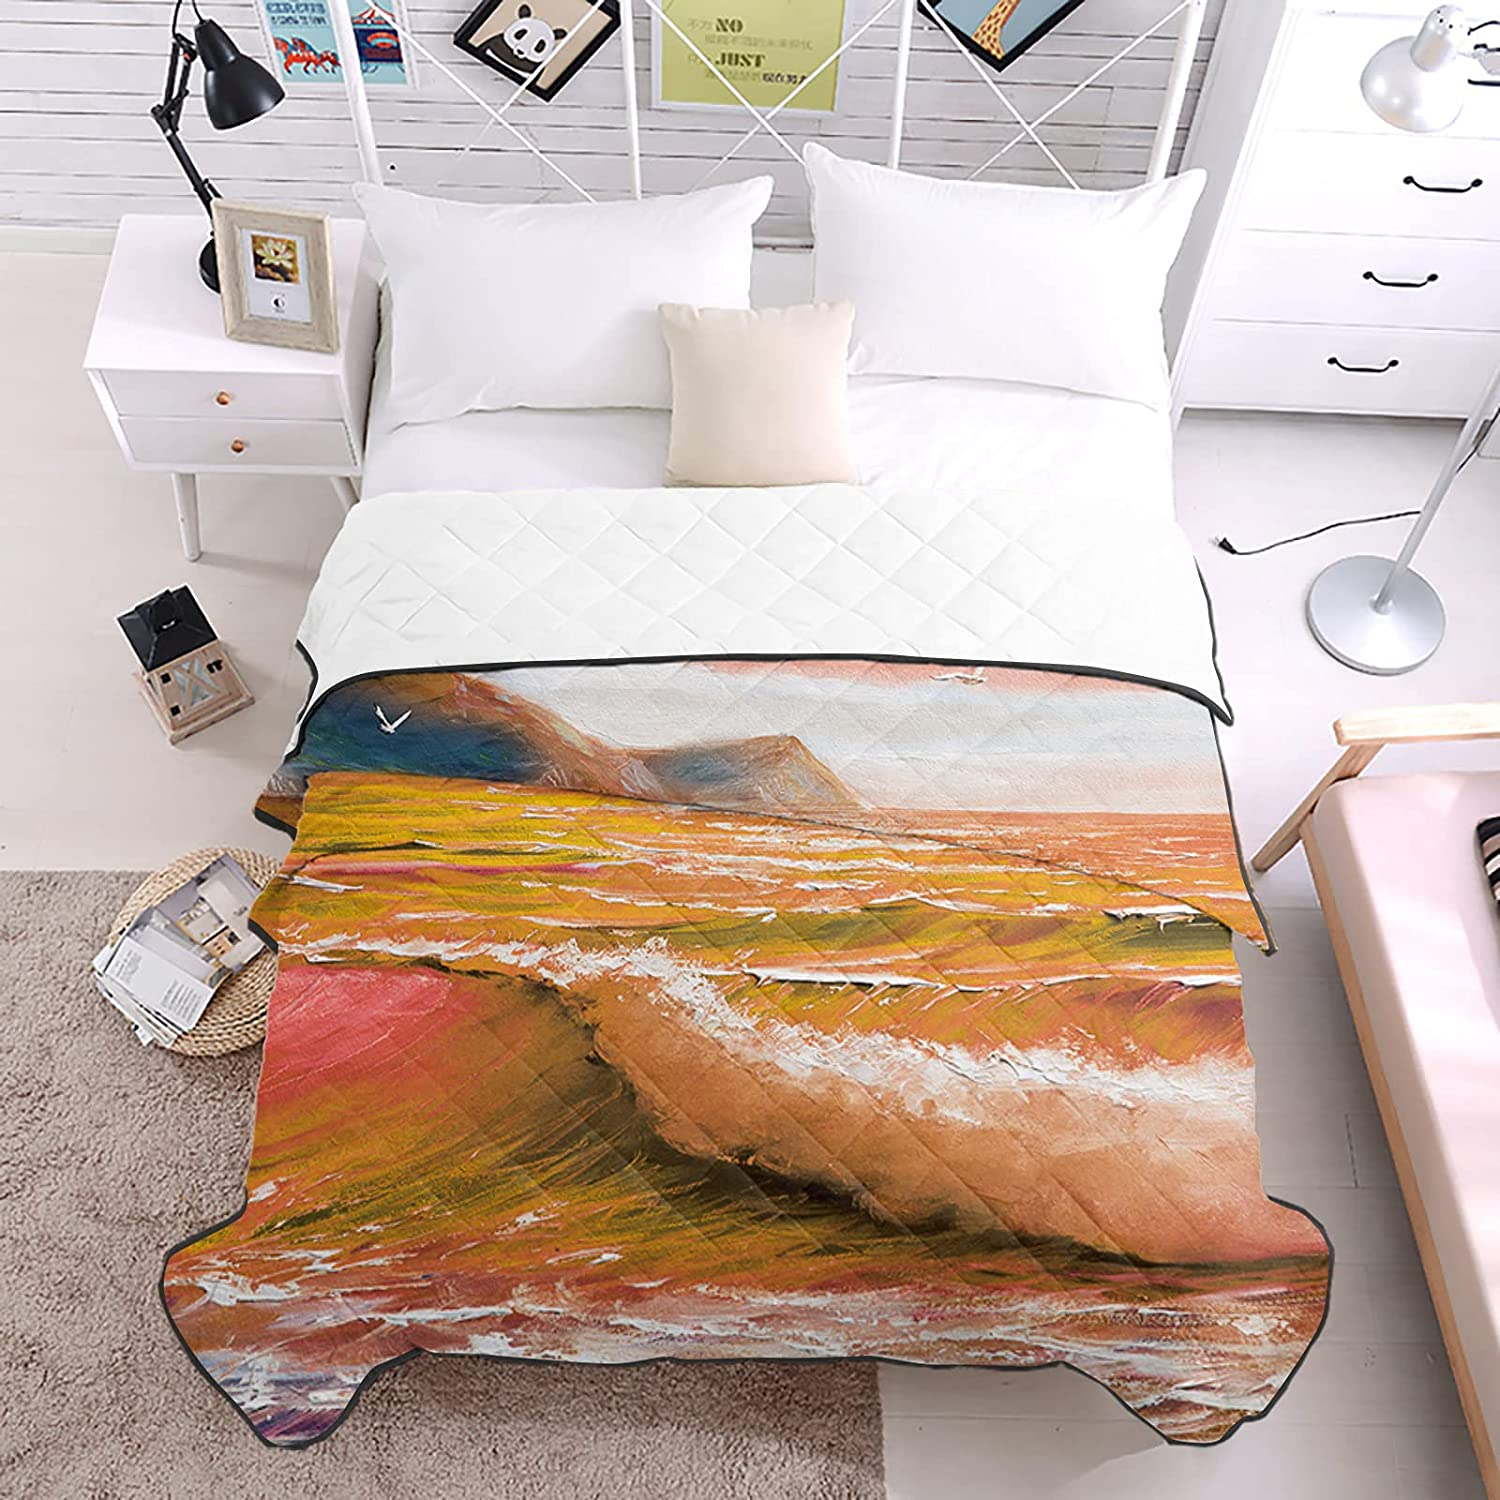 Bedding Duvets Hand-painted Seabirds Spasm price Orange Wave Beach Ar Ocean Don't miss the campaign